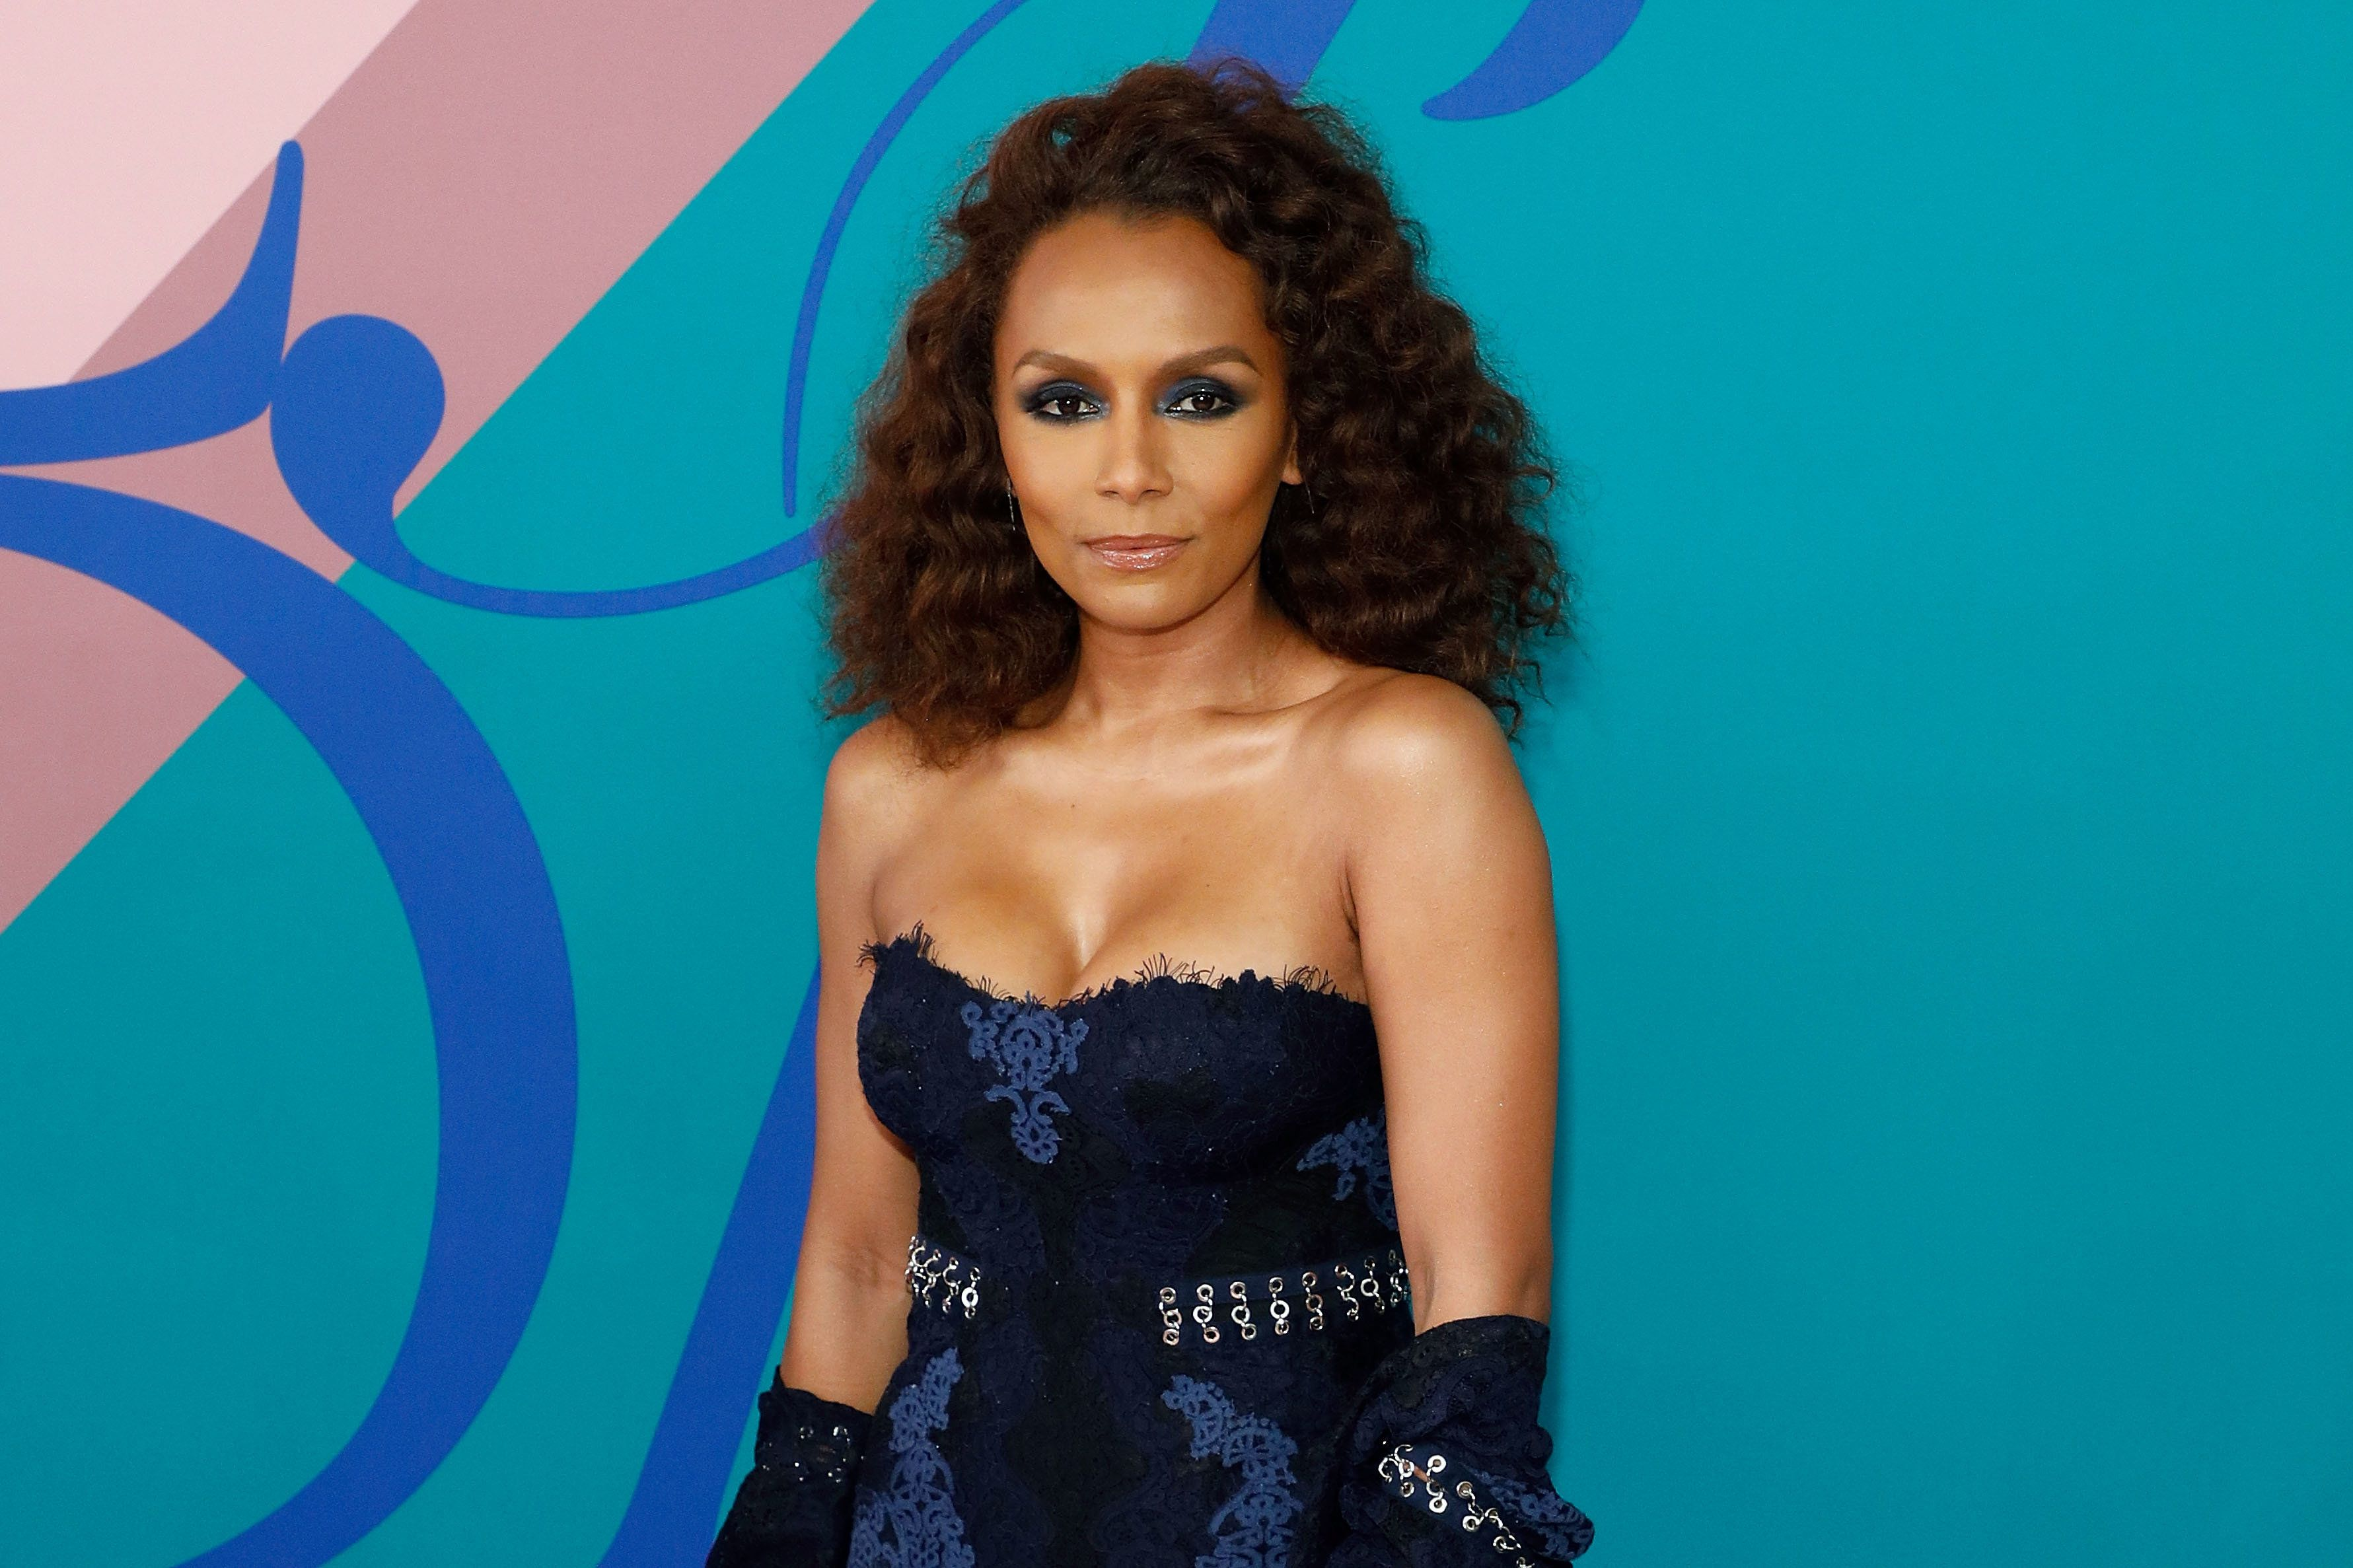 Janet Mock attends the 2017 CFDA Fashion Awards at Hammerstein Ballroom on June 5, 2017 in New York City.